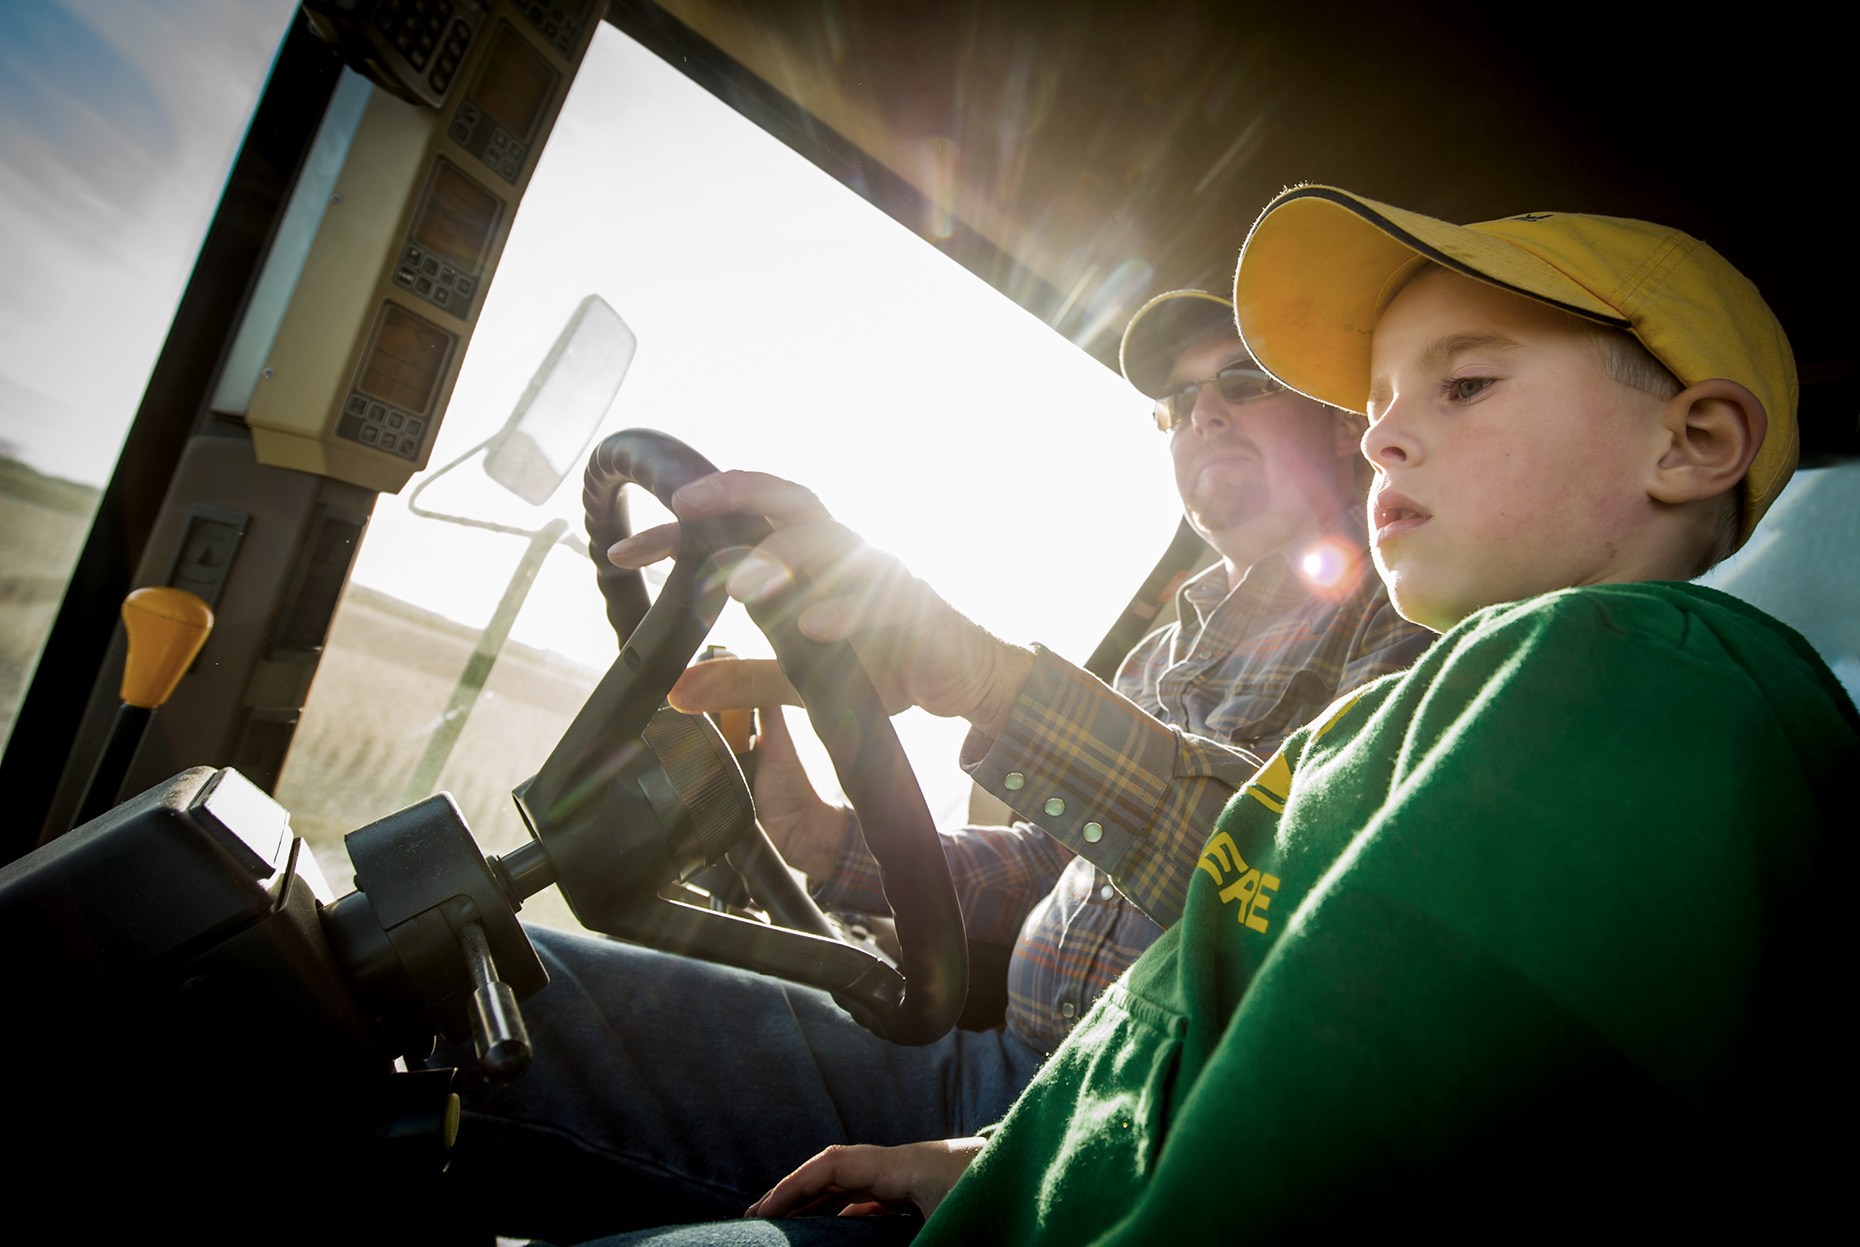 Farmer and Son in Combine